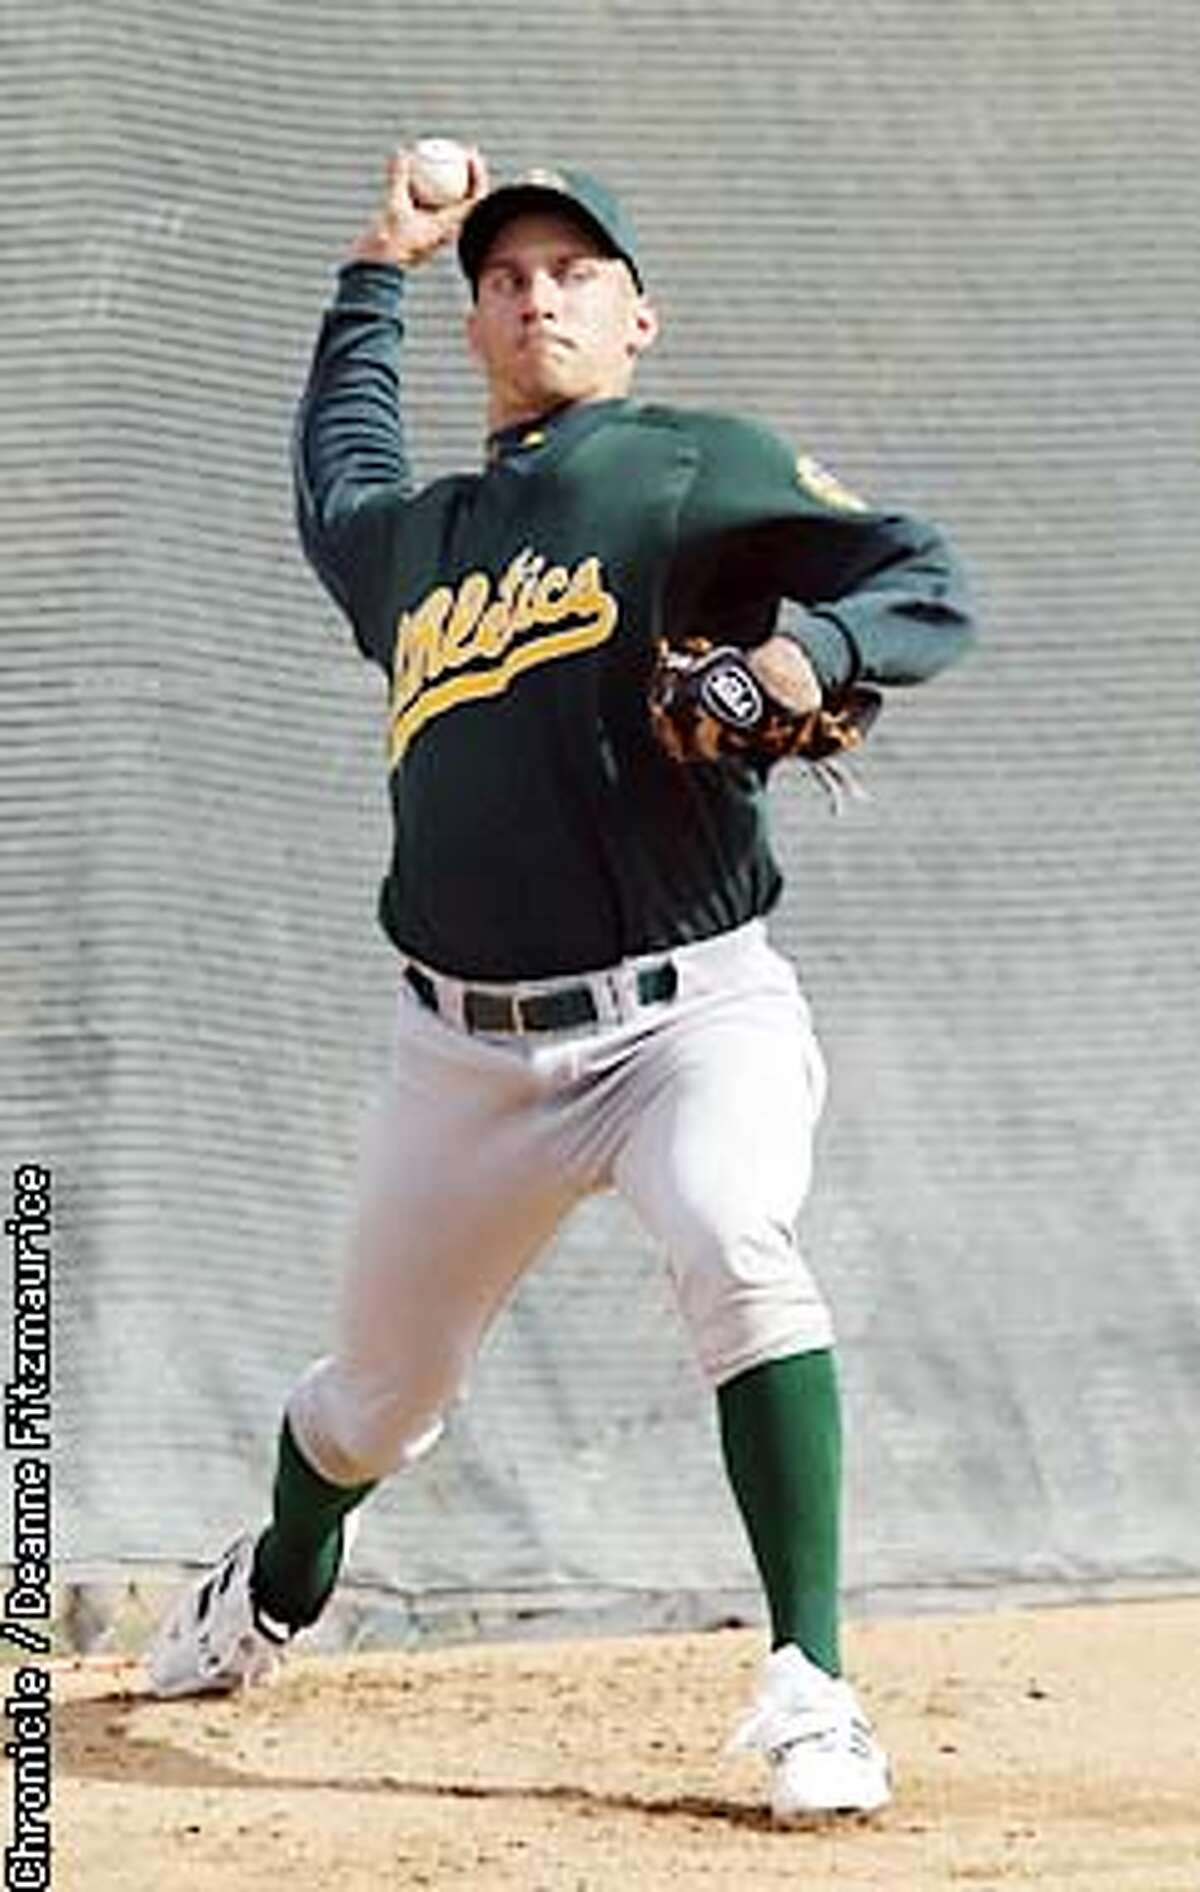 Oakland Athletics new pitcher Billy Koch throws pitches at A's Spring Training in Phoenix, AZ. CHRONICLE PHOTO BY DEANNE FITZMAURICE